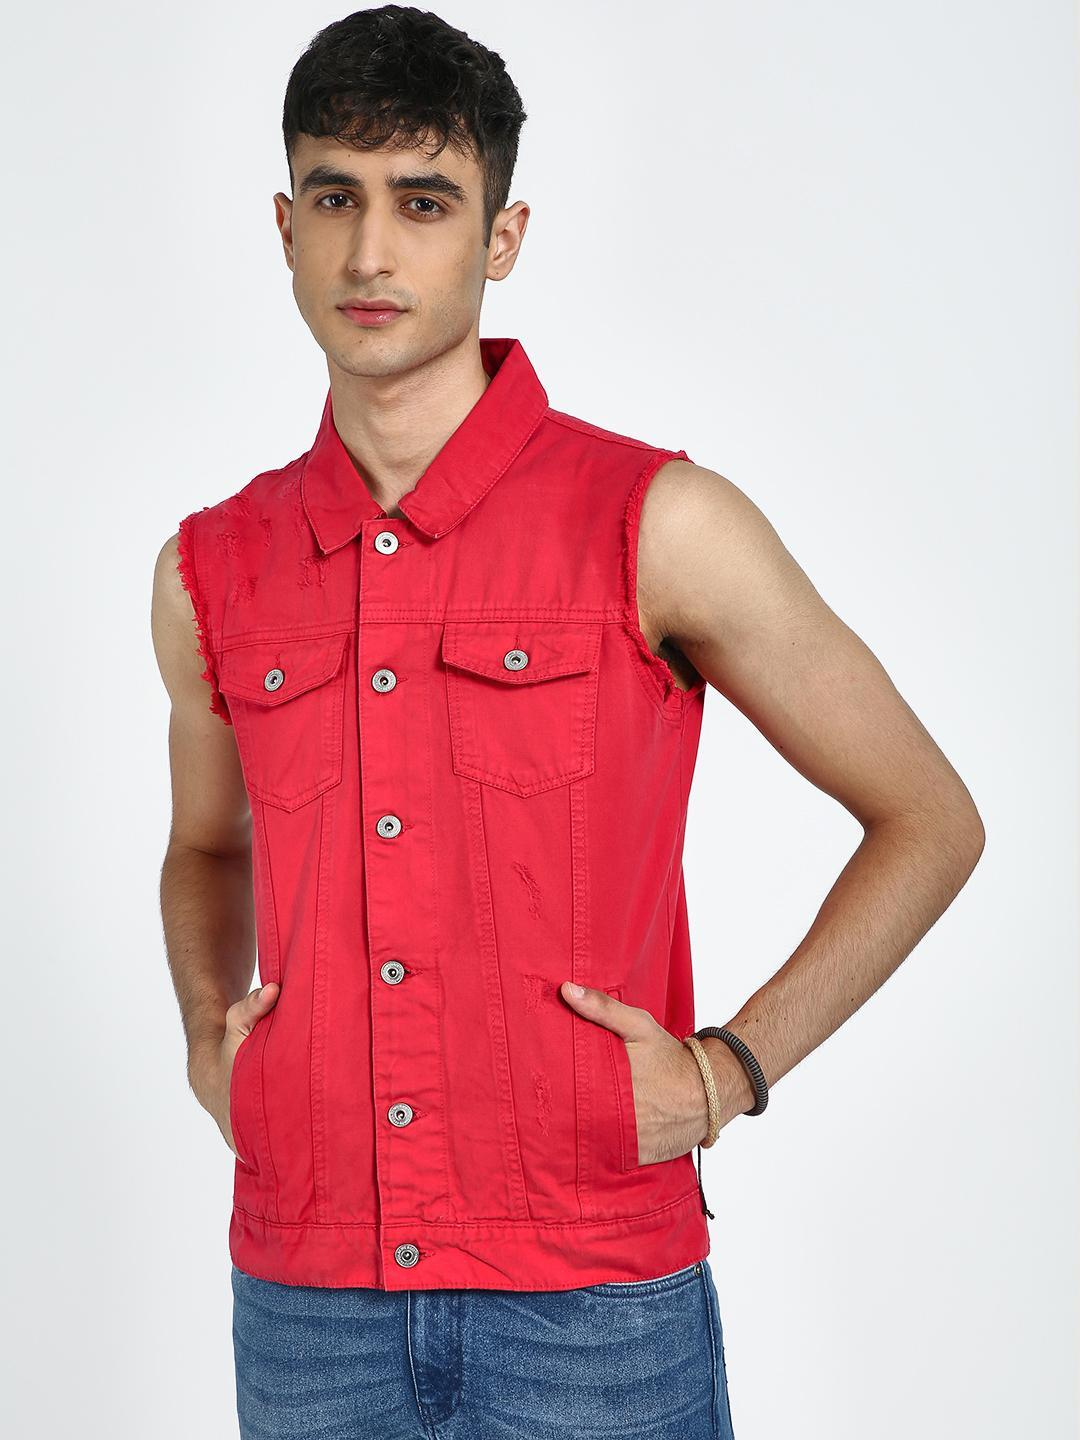 Blue Saint Red Twin Patch Pocket Sleeveless Jacket 1